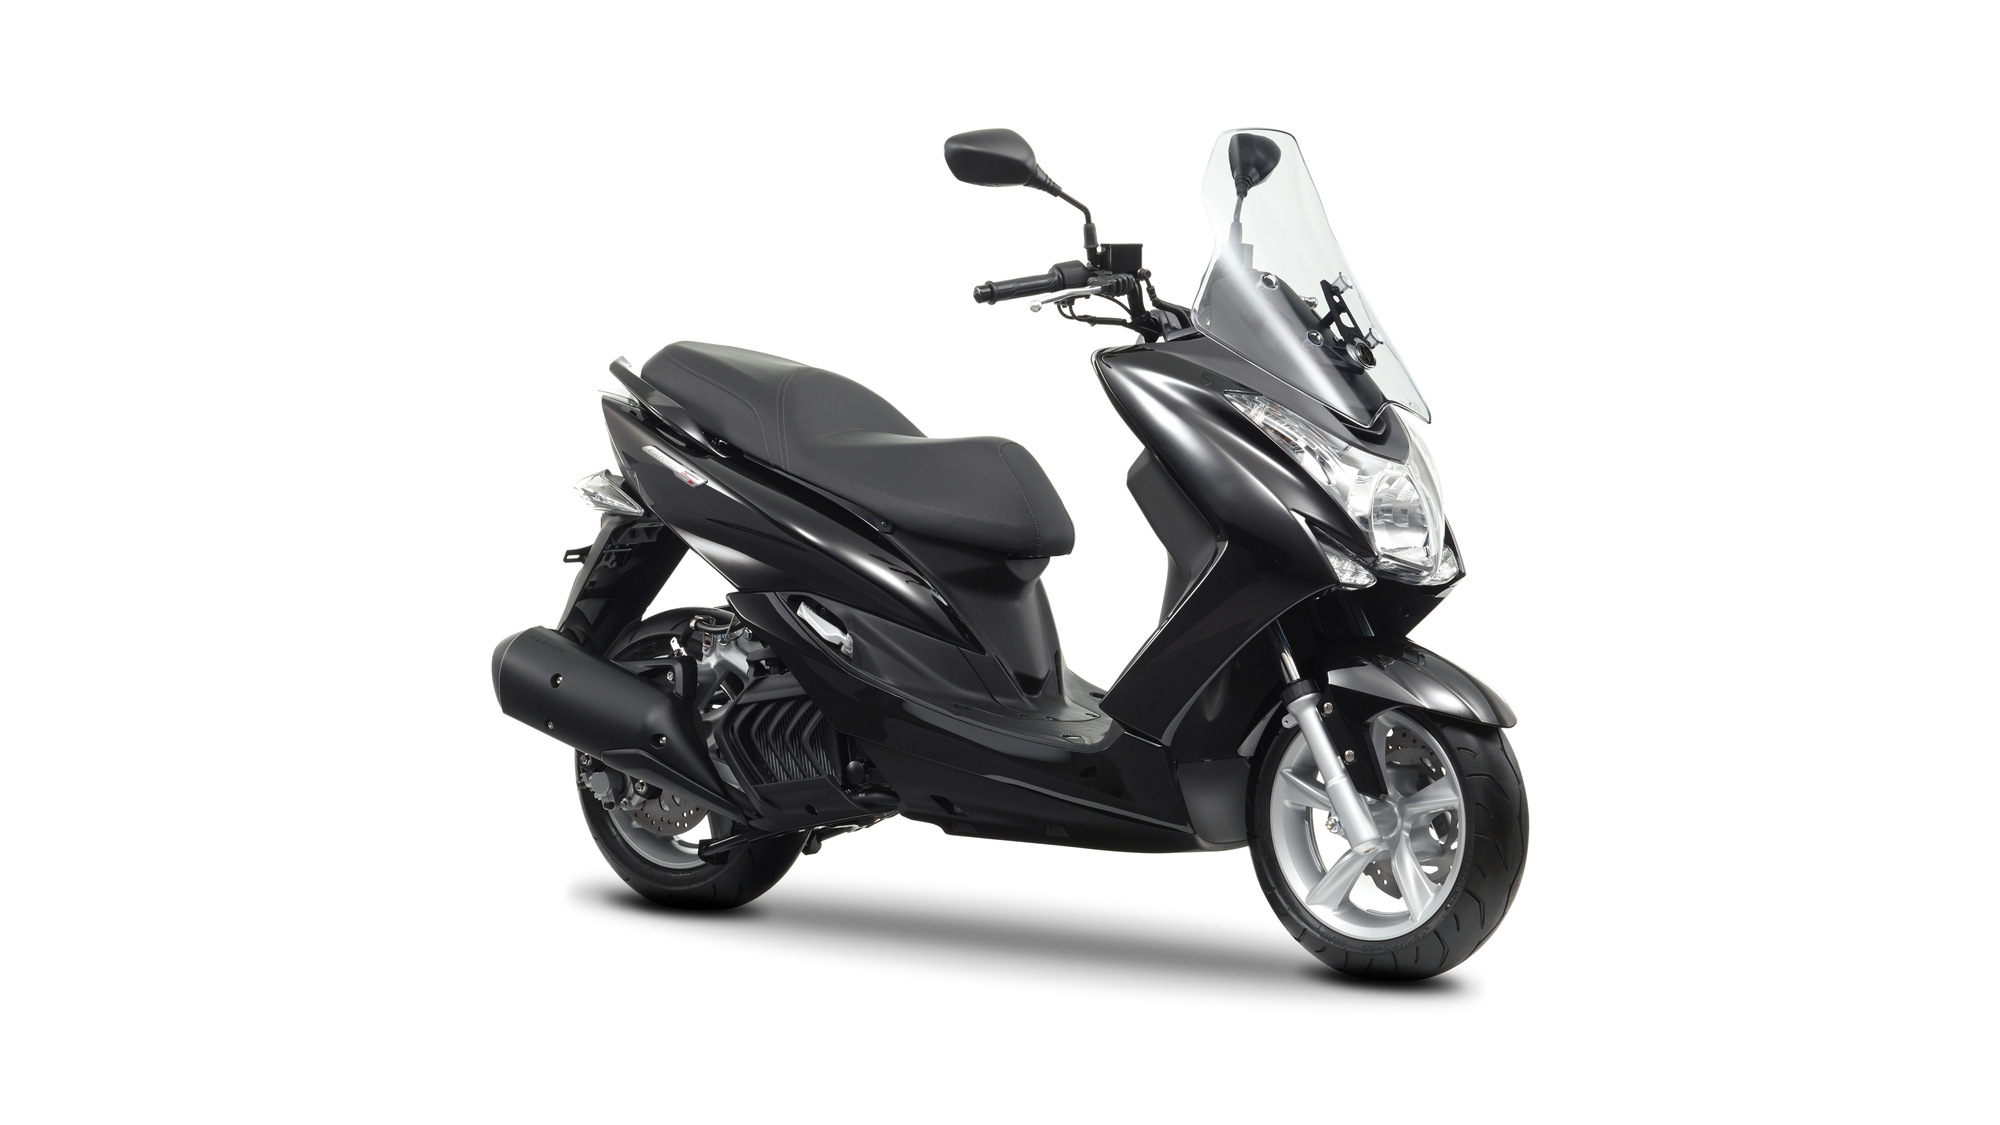 yamaha s new majesty s 125cc scooter visordown. Black Bedroom Furniture Sets. Home Design Ideas